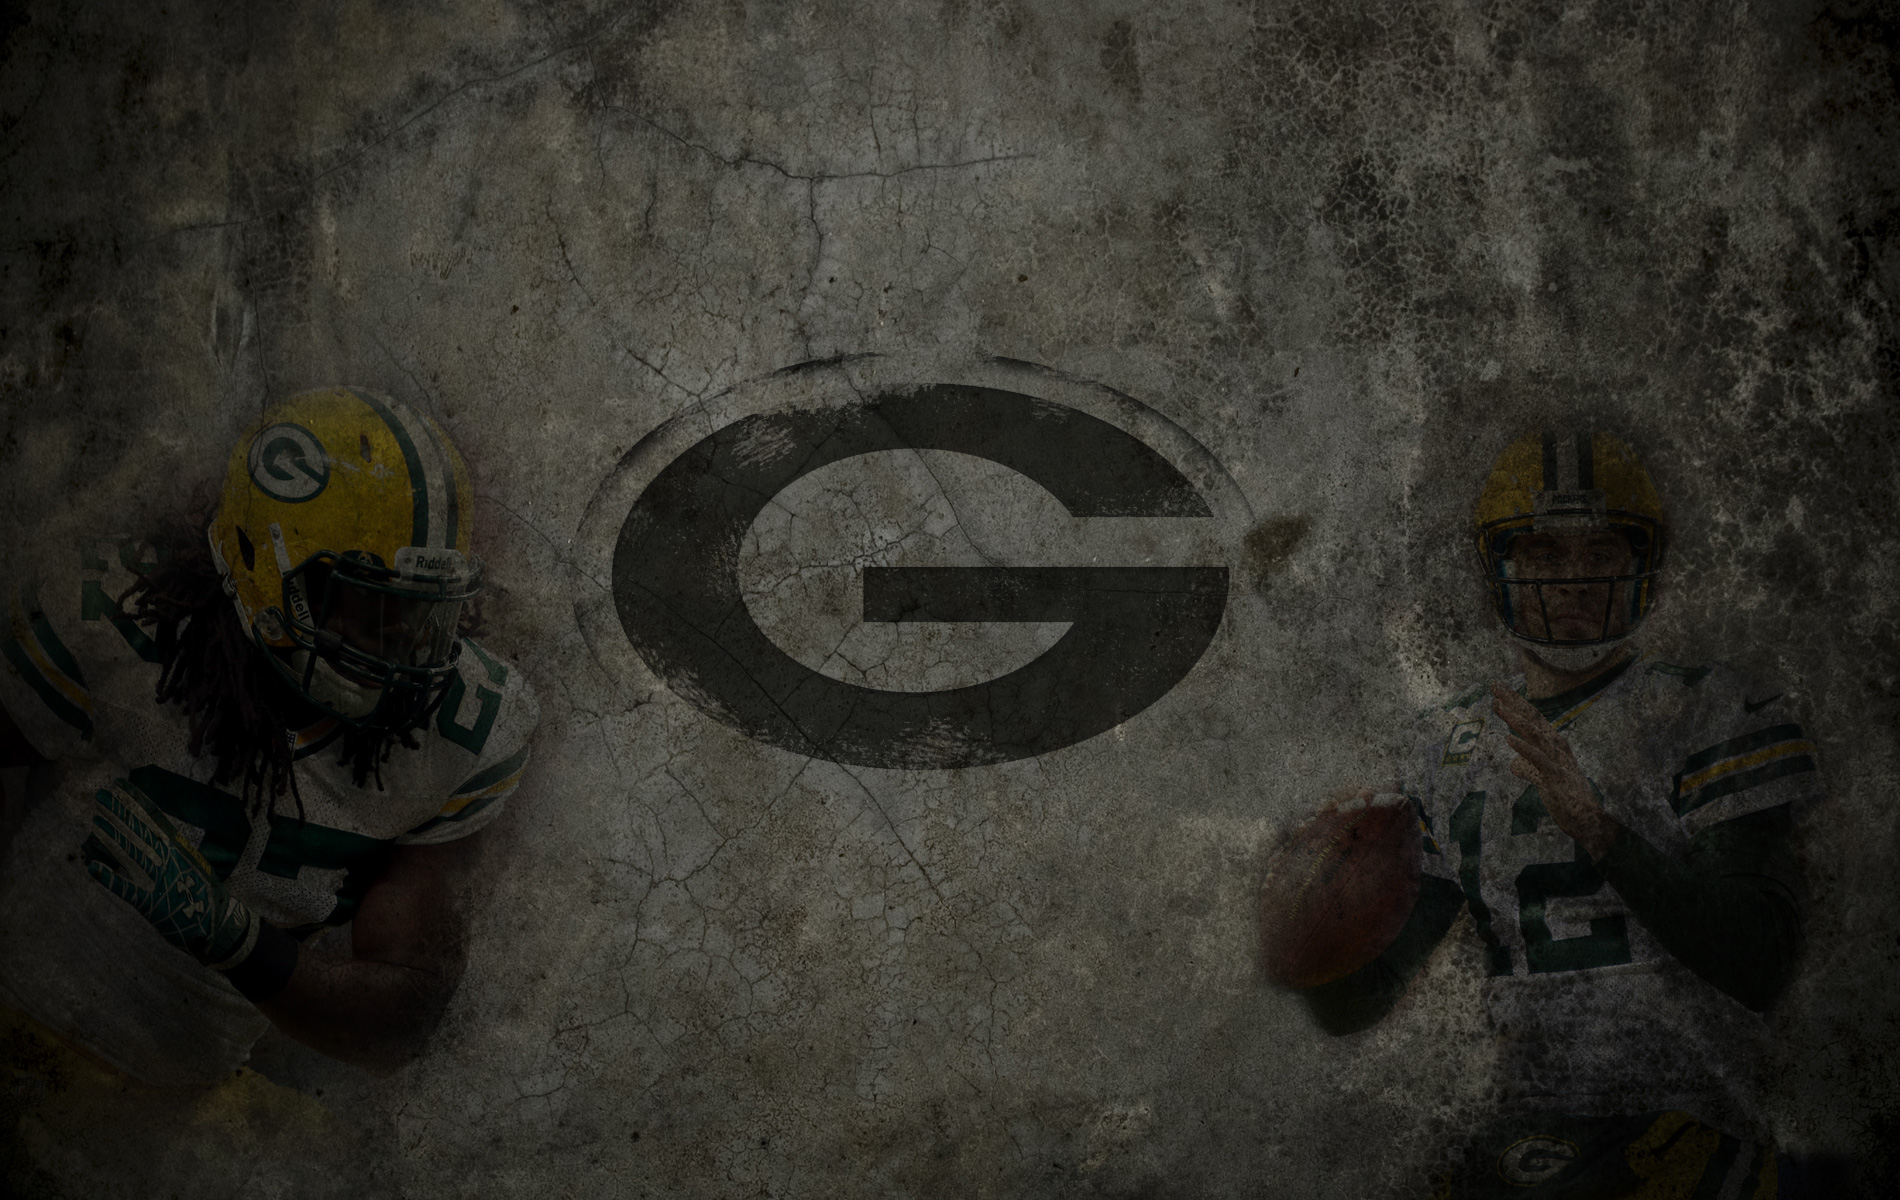 Packers Packers Packer Background For Computer  packer wallpaper I just  packers 1900x1200